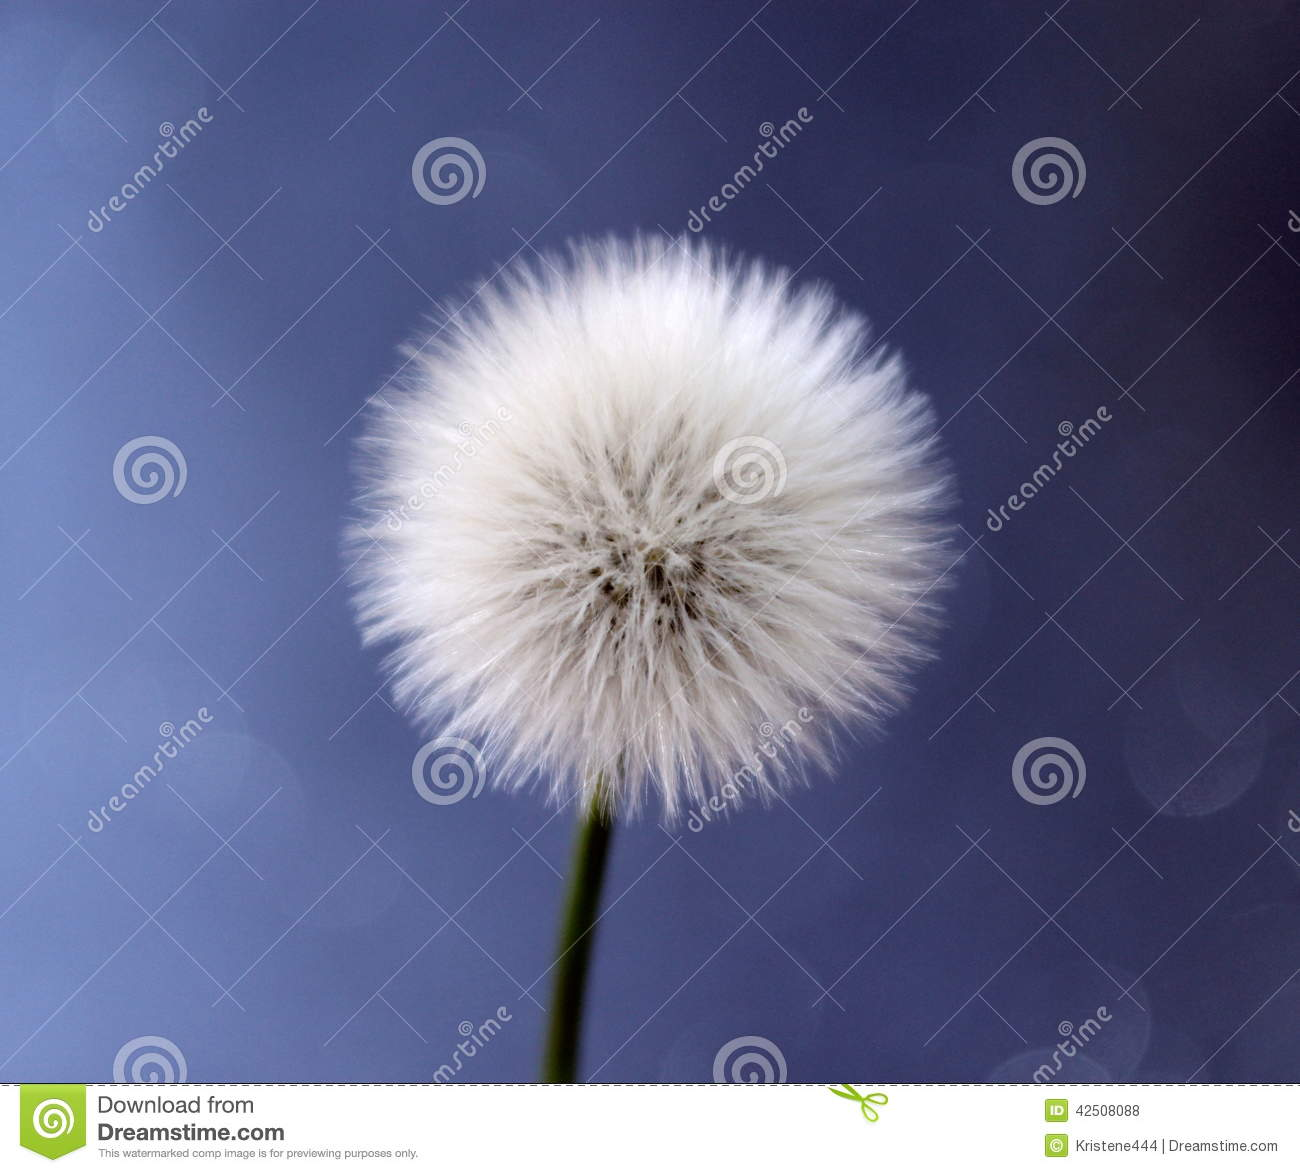 Dandelion Stock Photo. Image Of Plant, Garden, Abstract